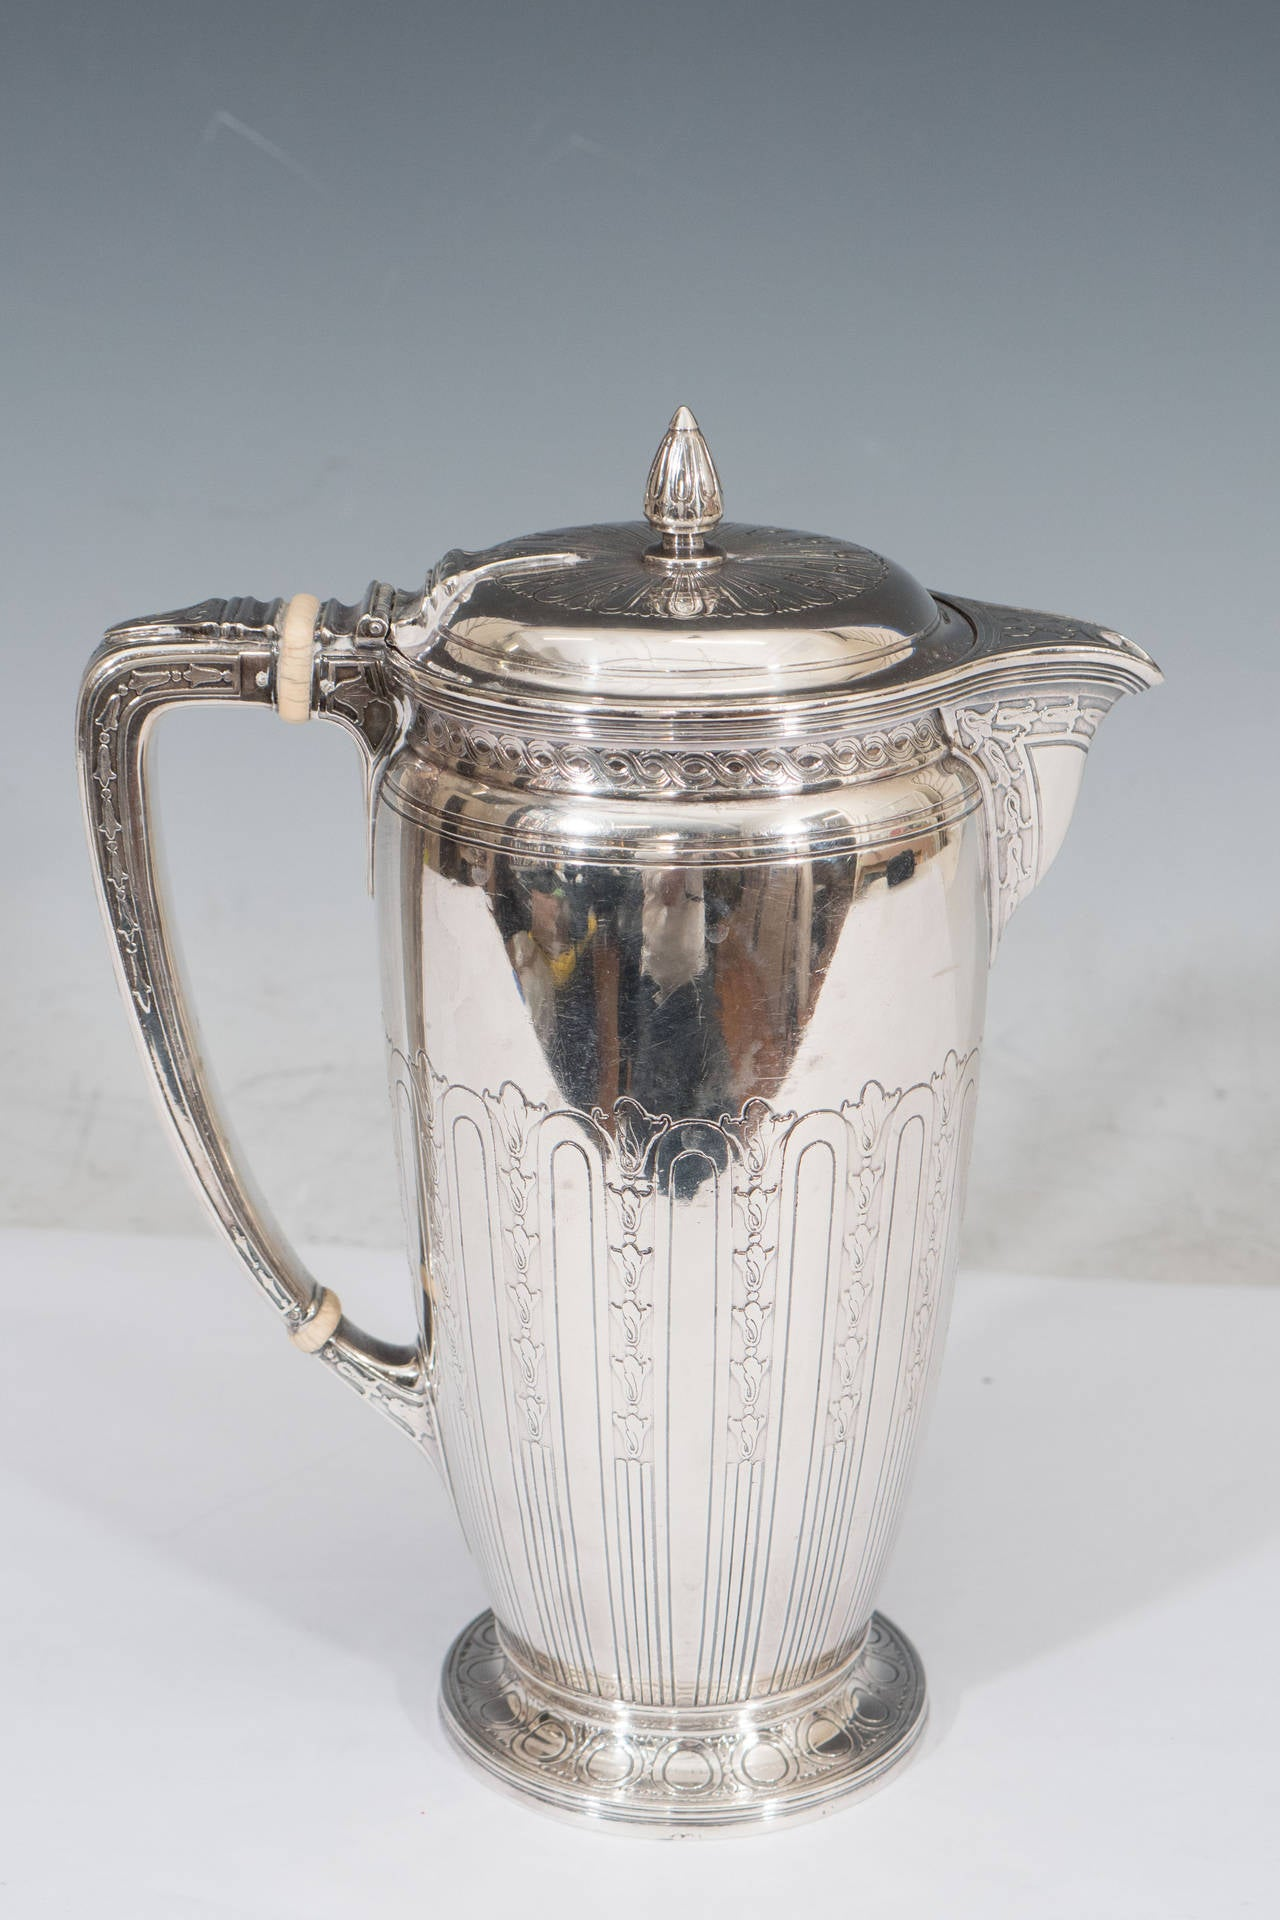 tiffany and co  sterling silver coffee pot or water pitcher at 1stdibs